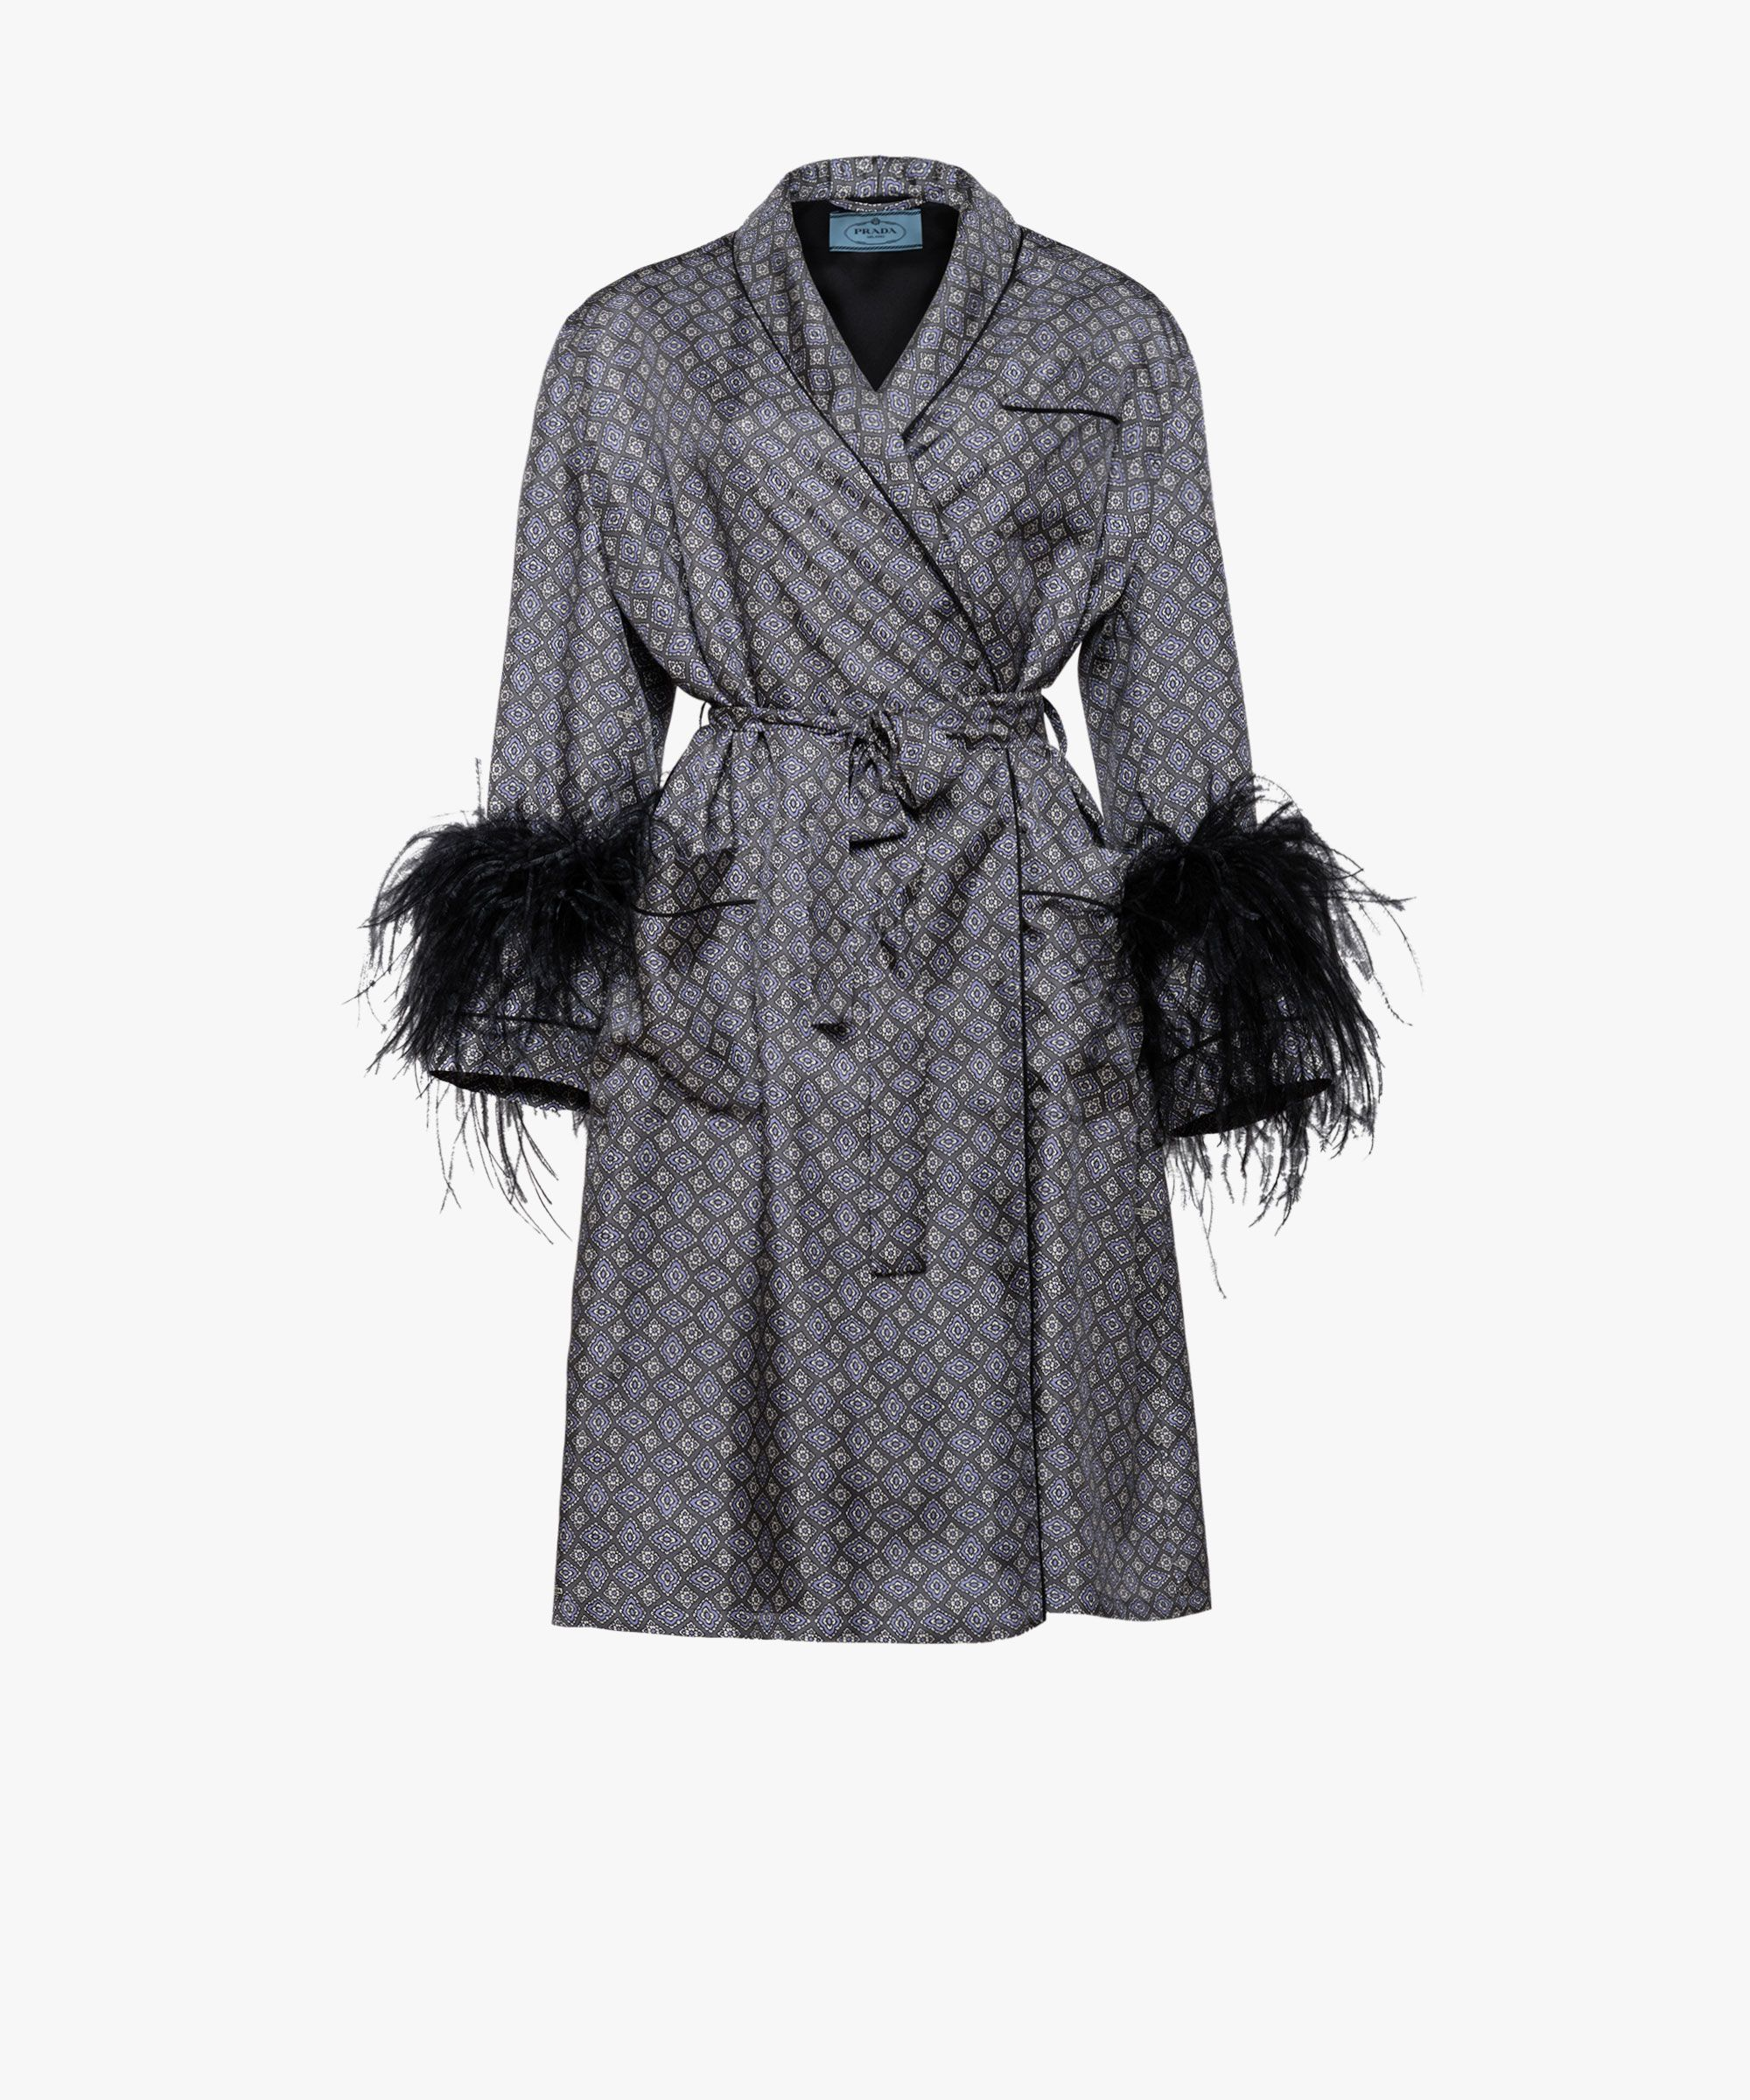 d4dbbb7eac44f4 Prada - Wisteria silk coat with black feathers | COATS/JACKETS in ...